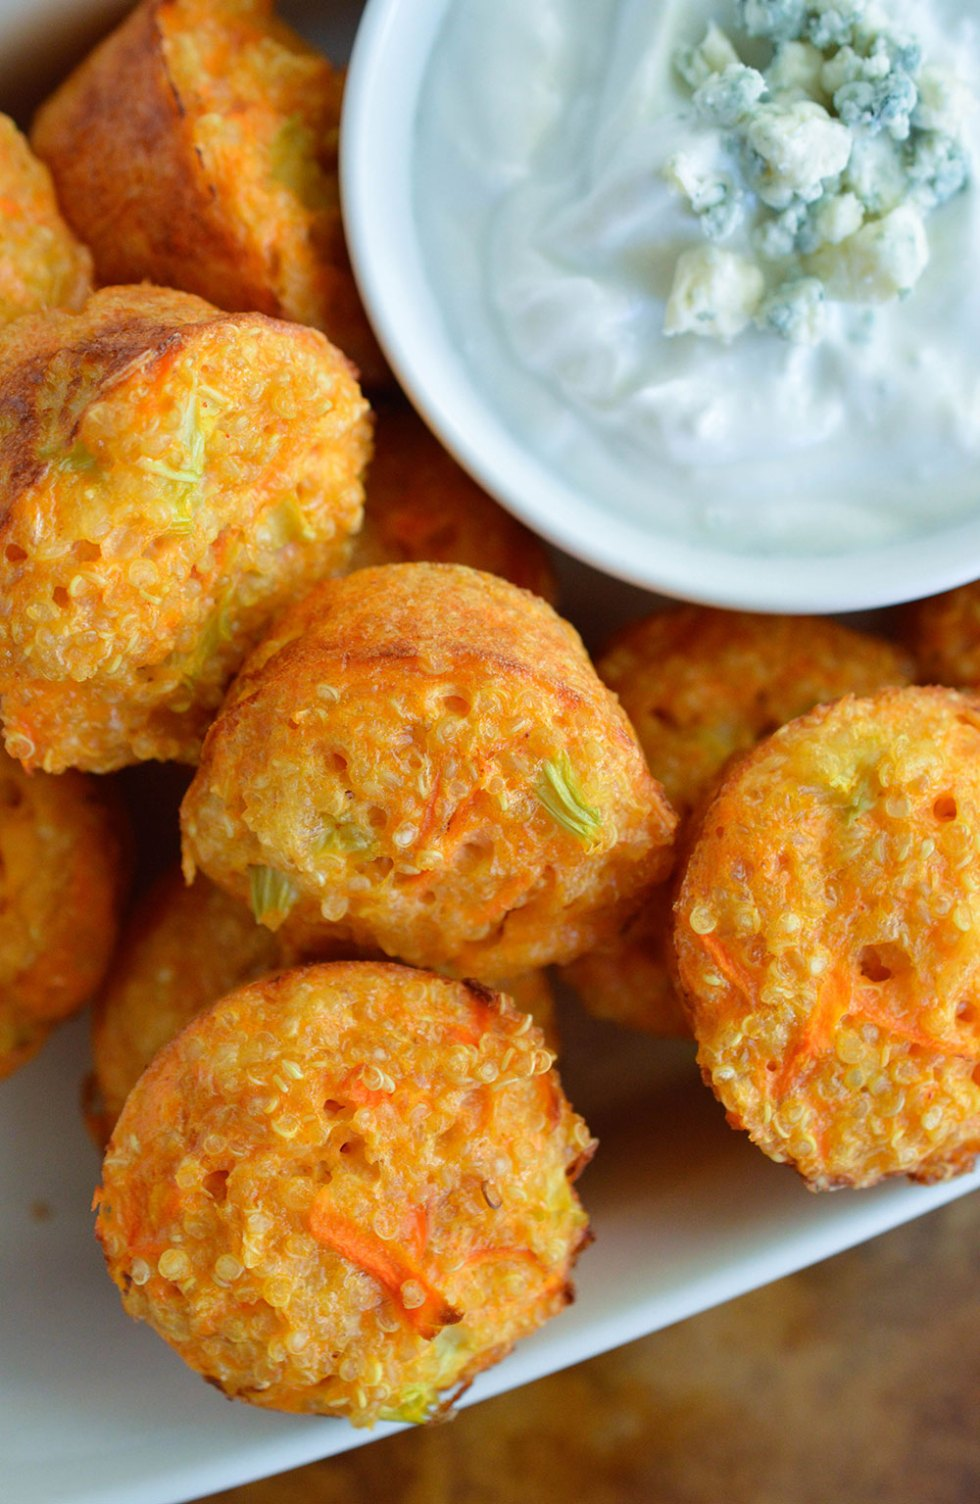 Quinoa Buffalo Bites have all the flavor of buffalo wings but are low fat and low calorie. This gluten free appetizer recipe is perfect for game day or parties! Baked quinoa bites with blue cheese Greek yogurt dipping sauce. #WeightWatchers